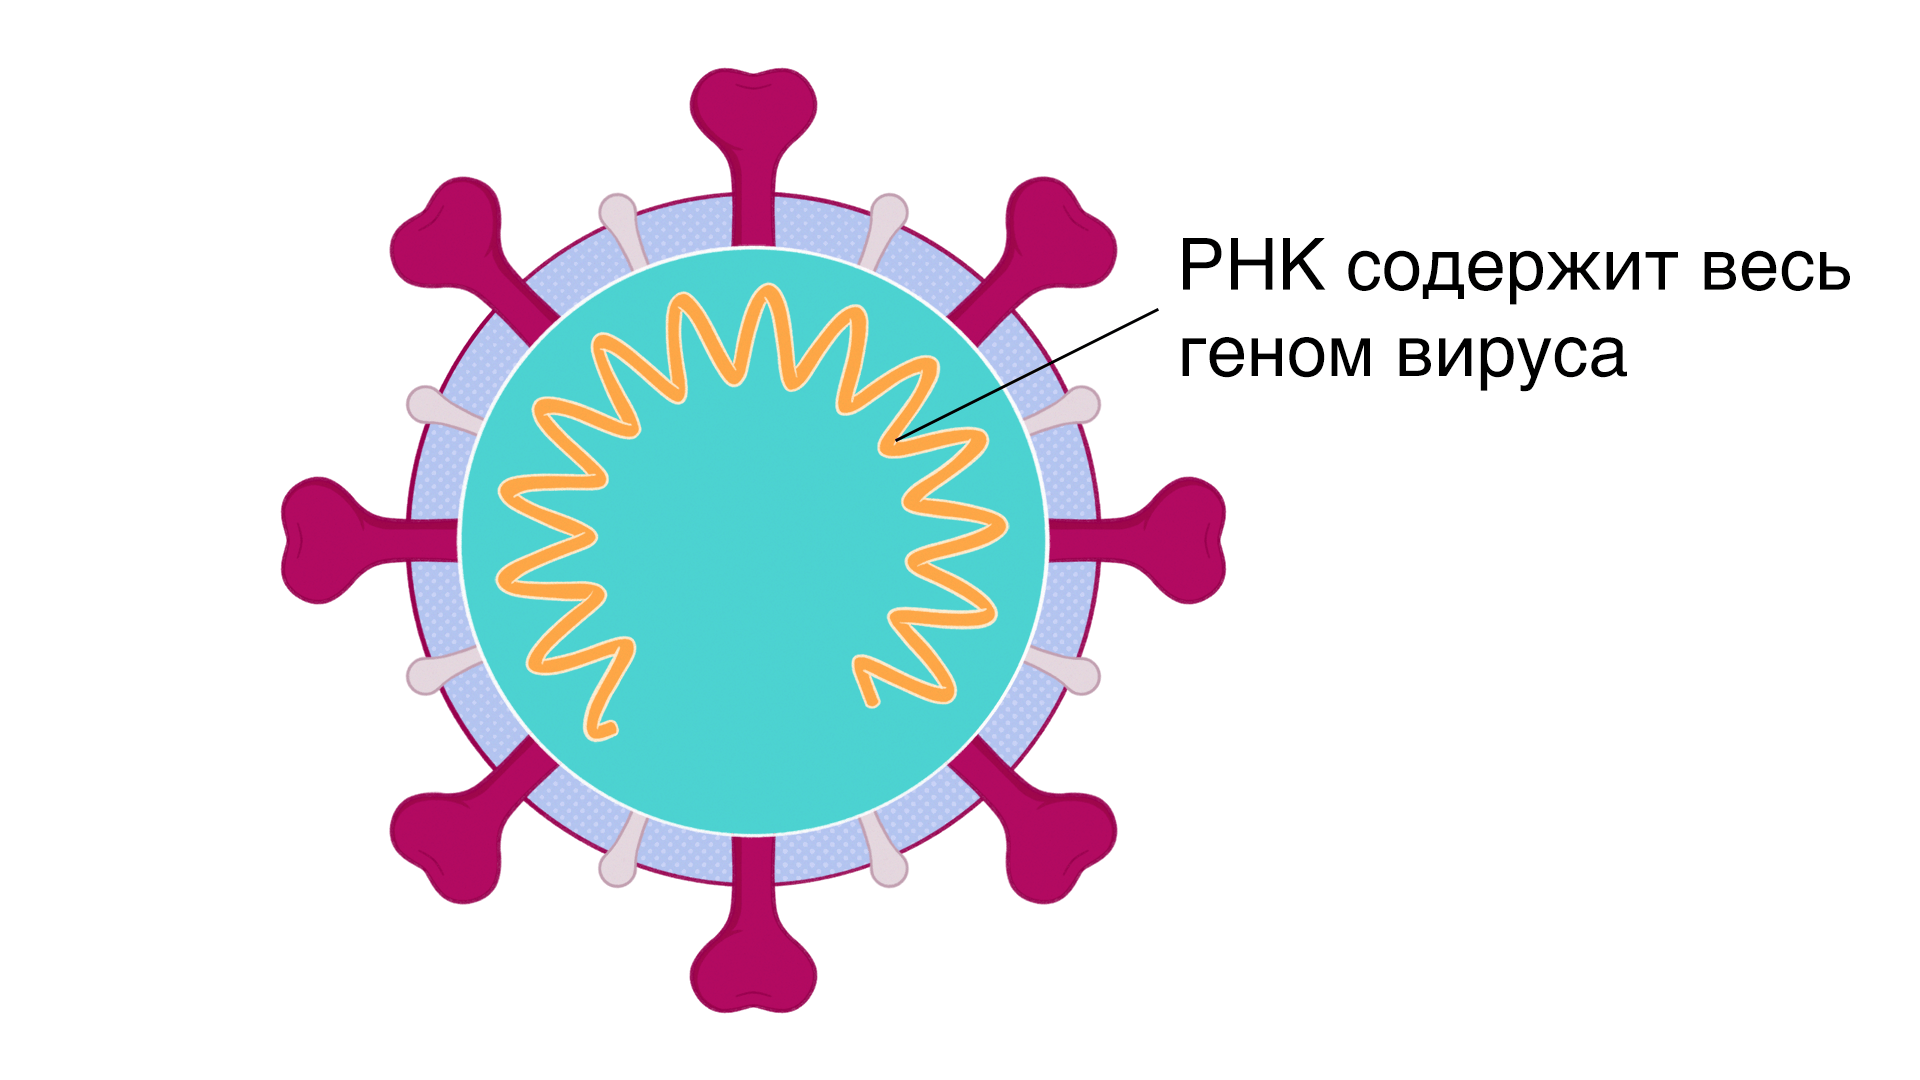 A single illustrated coronavirus with an arrow to its RNA which contains the entire genome of the virus